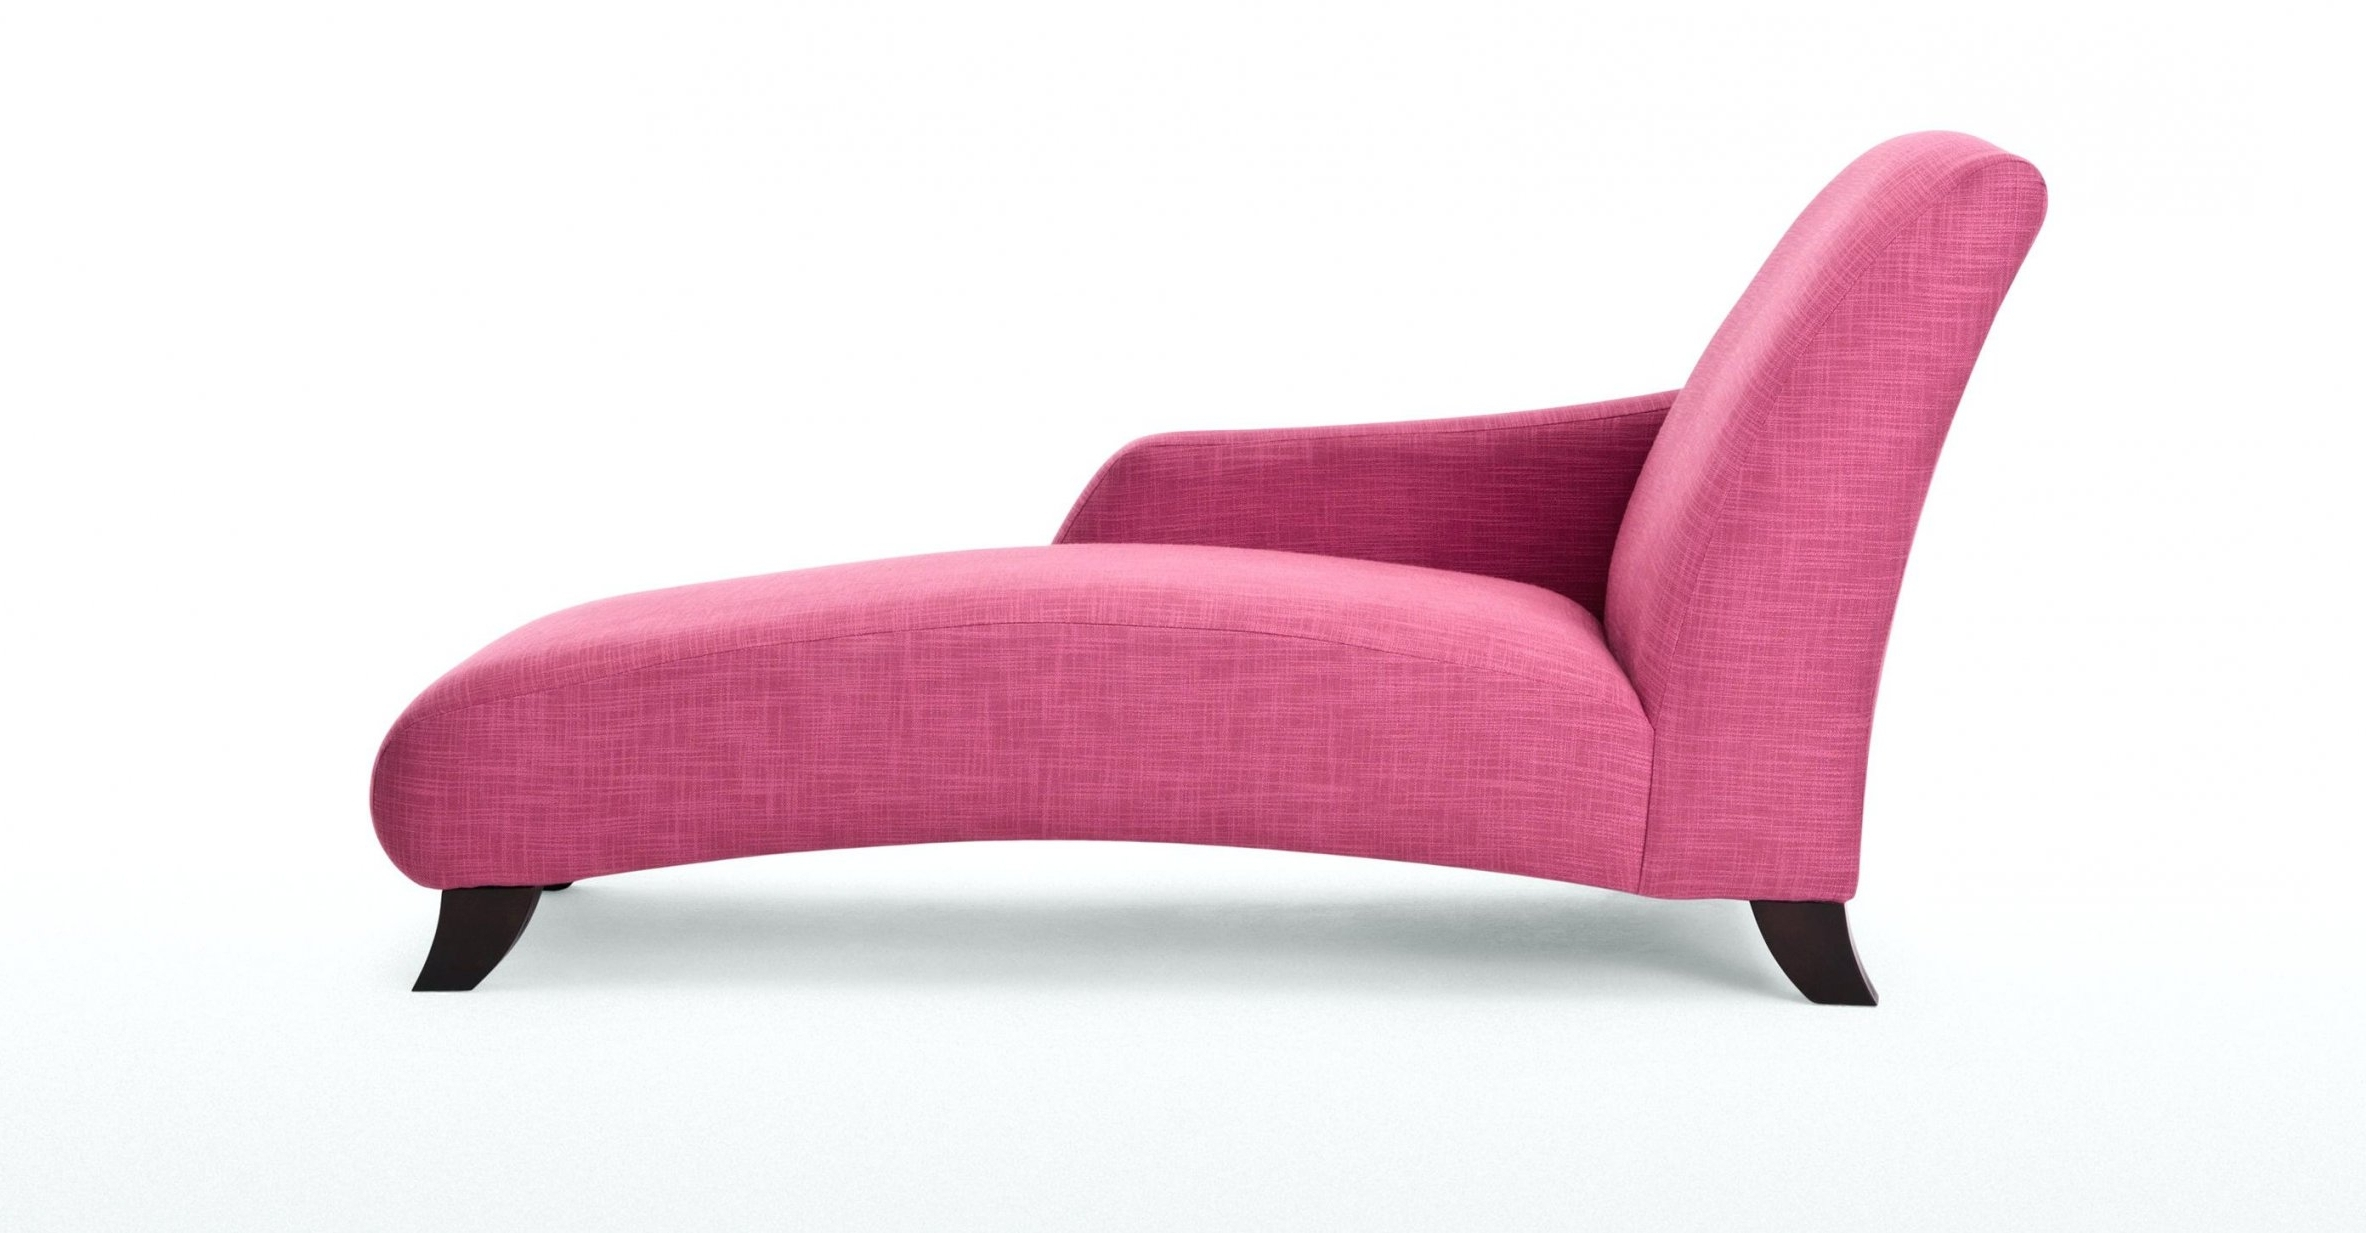 Best And Newest Pink Chaise Lounge Sofa Regarding Hot Pink Chaise Lounge Chairs (View 3 of 15)